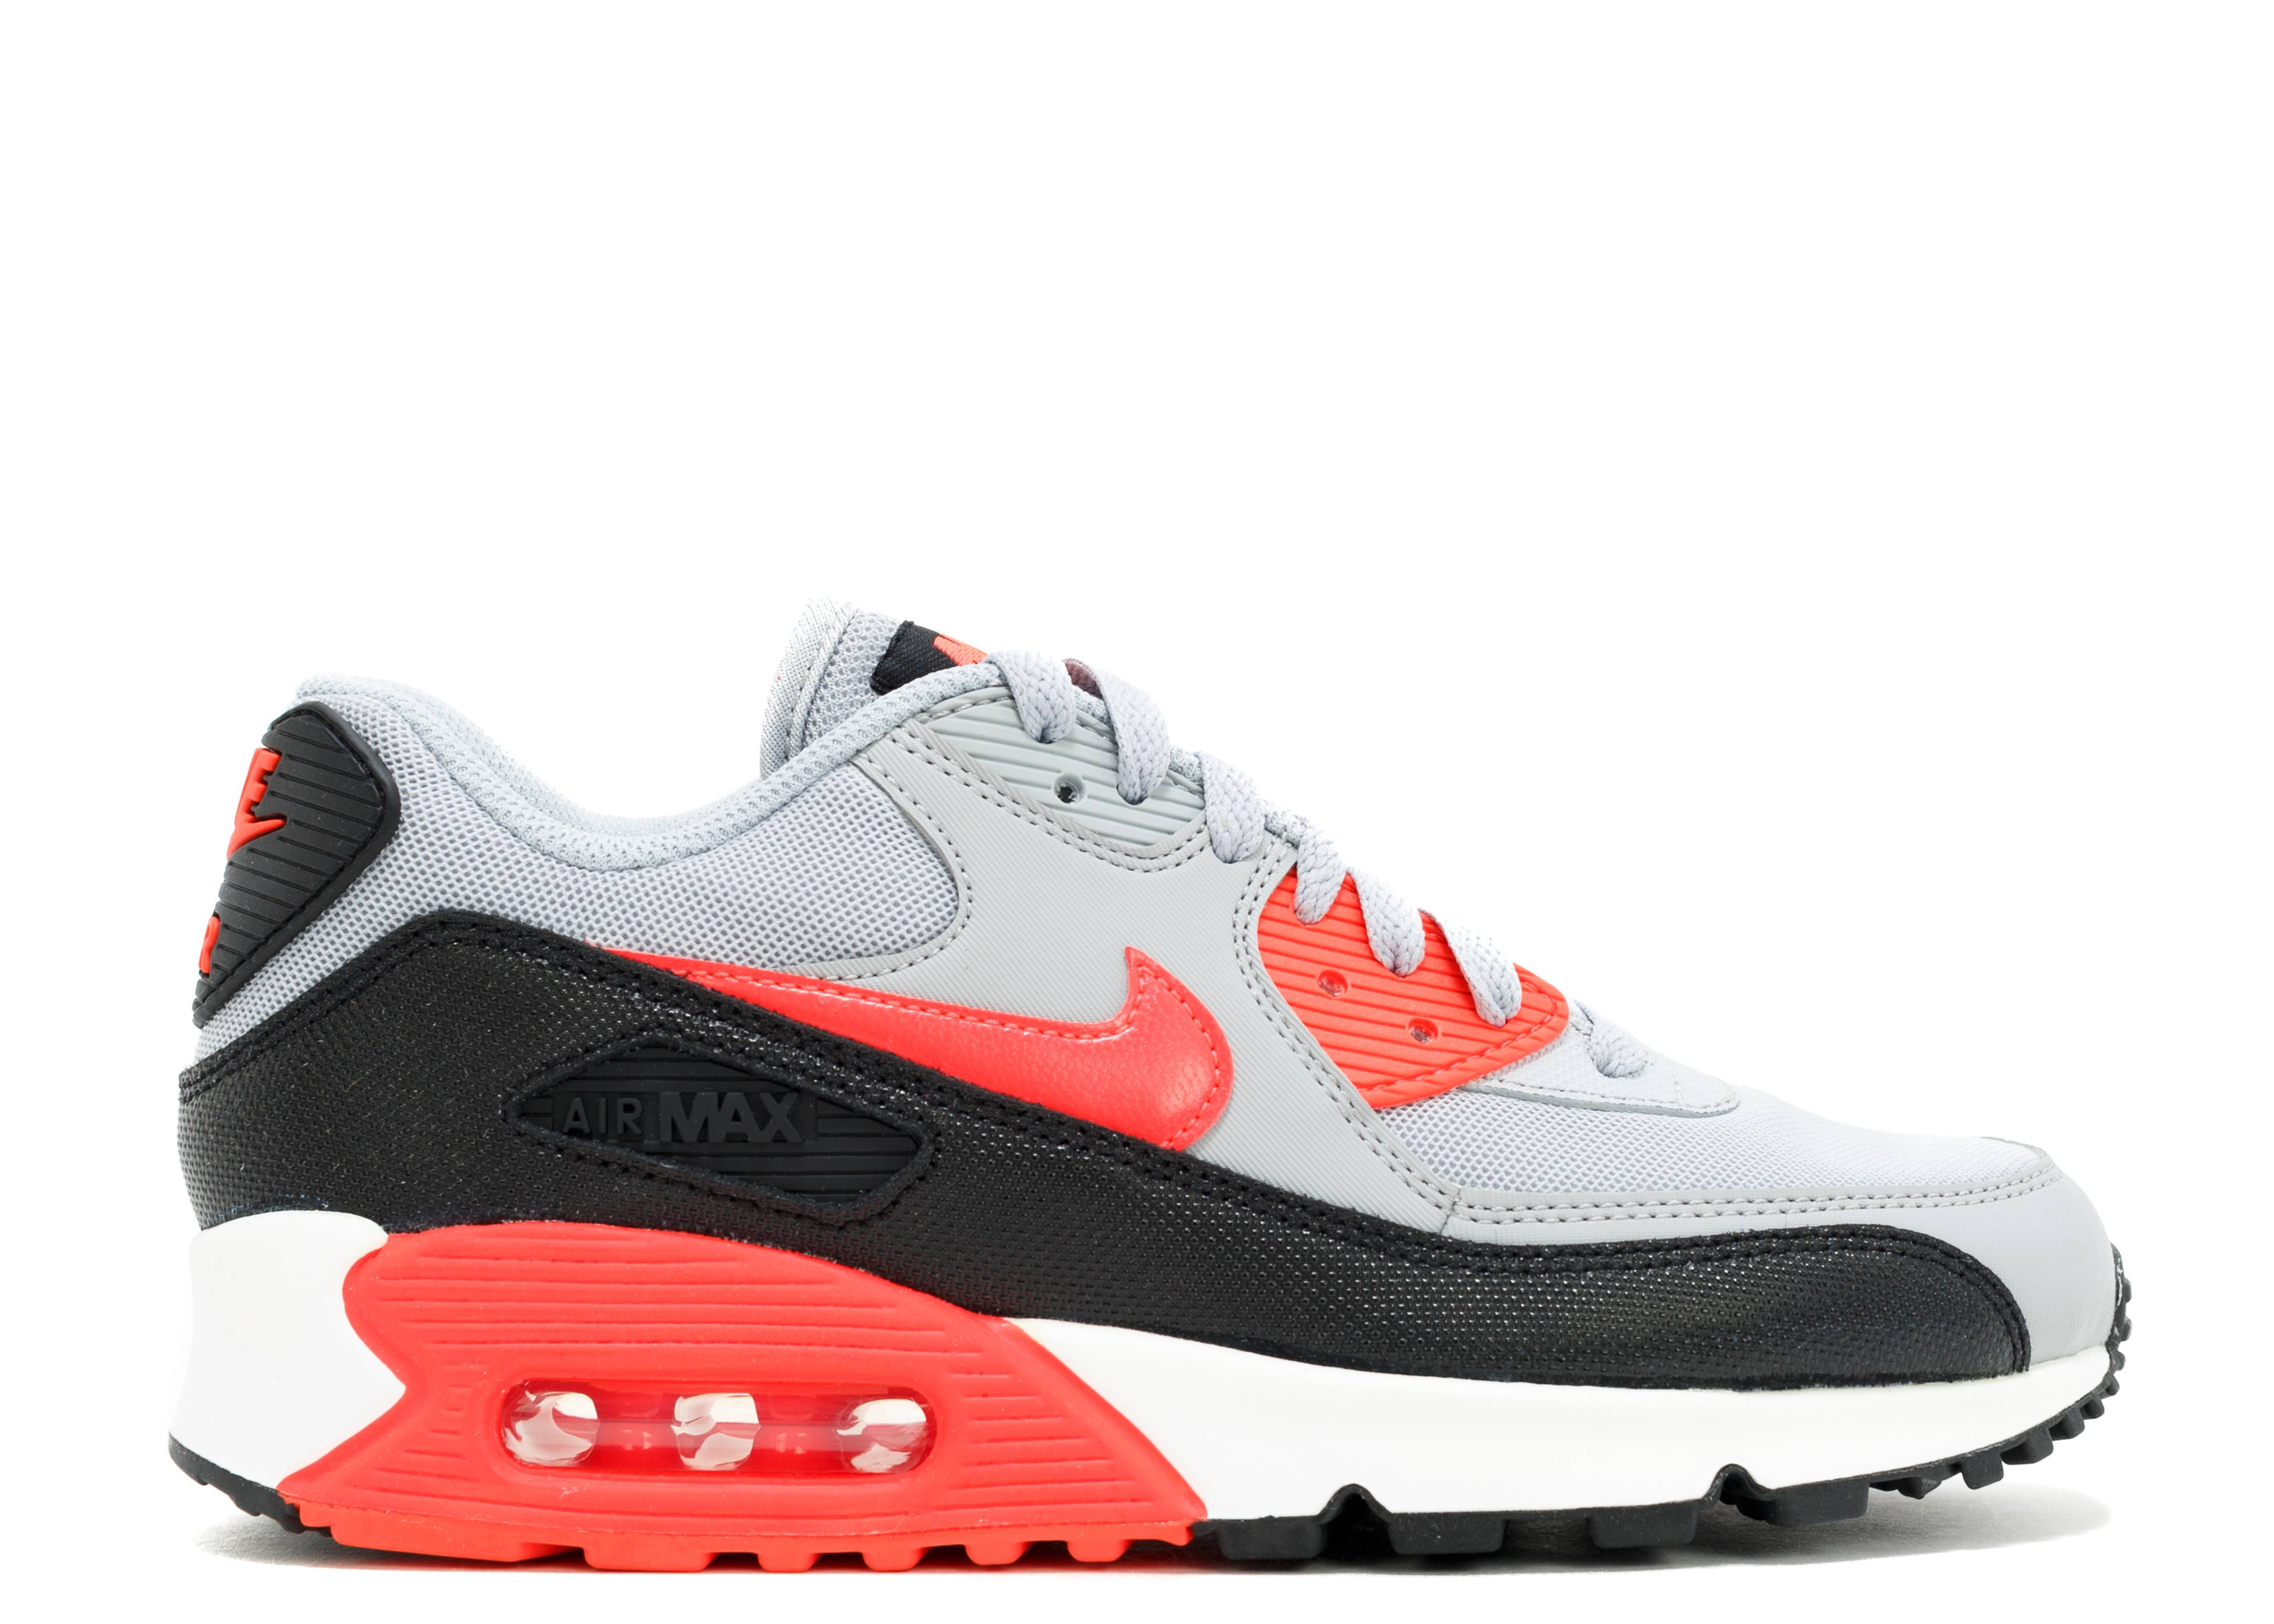 d768281d07 W's Air Max 90 Essential - Nike - 616730 014 - wolf grey/infrared ...